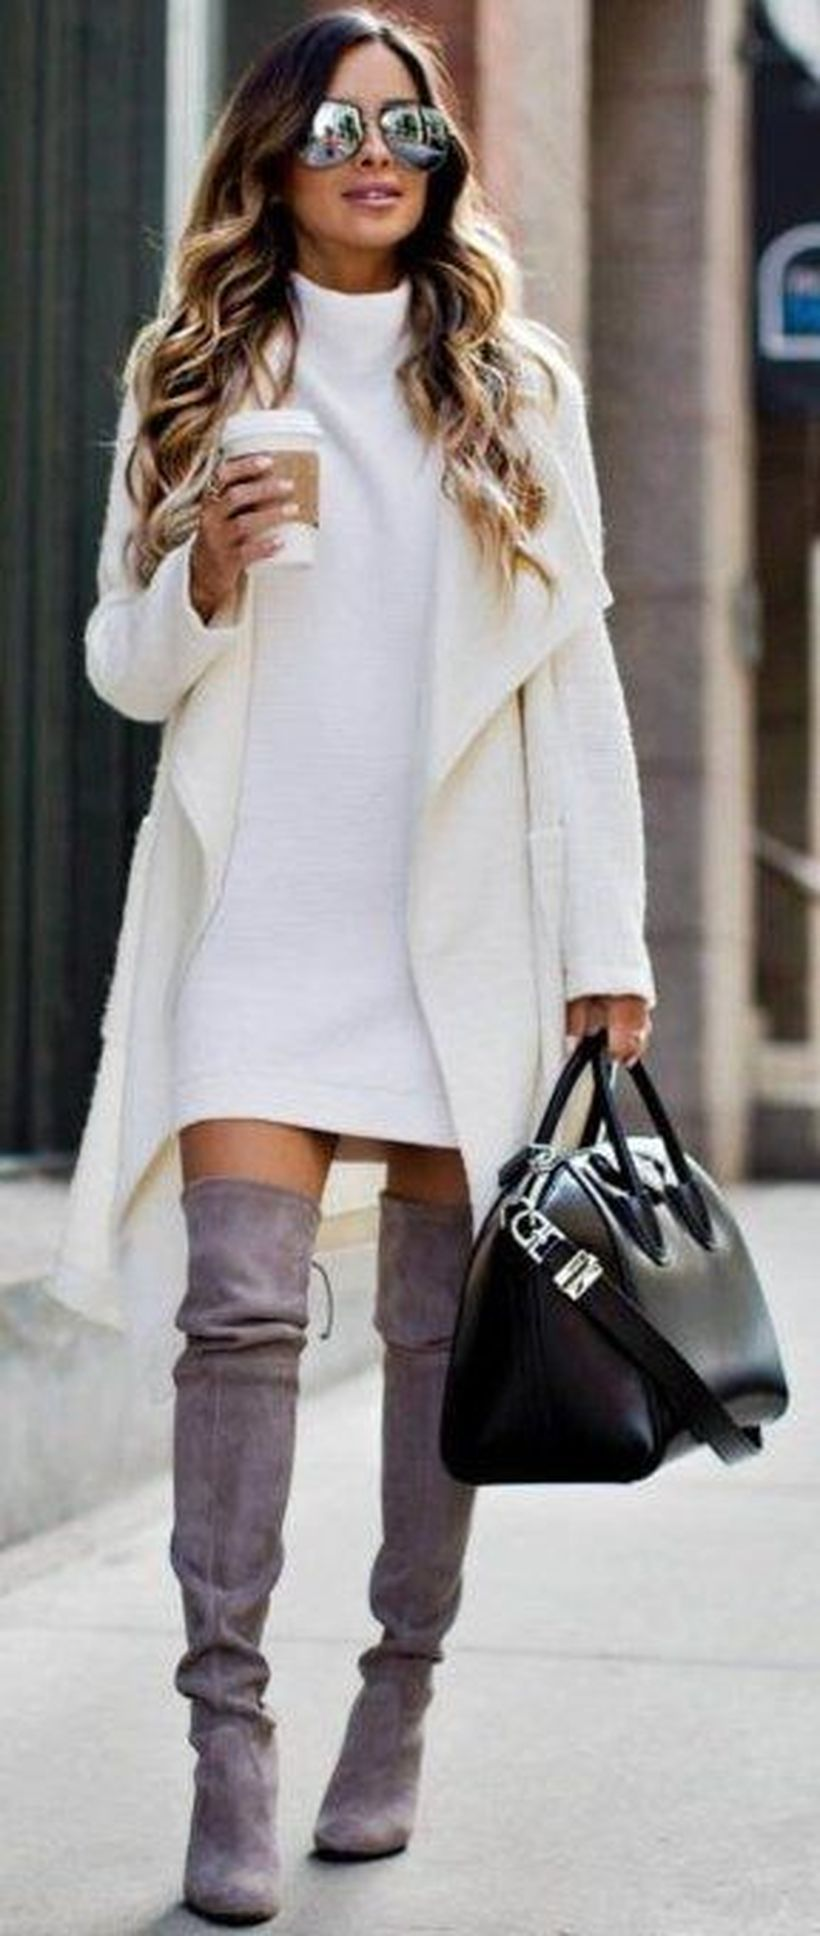 0a3962ea695e5047bbb7eb925ff13880 - The University of Texas at Austin best 15 Winter college fashion ideas